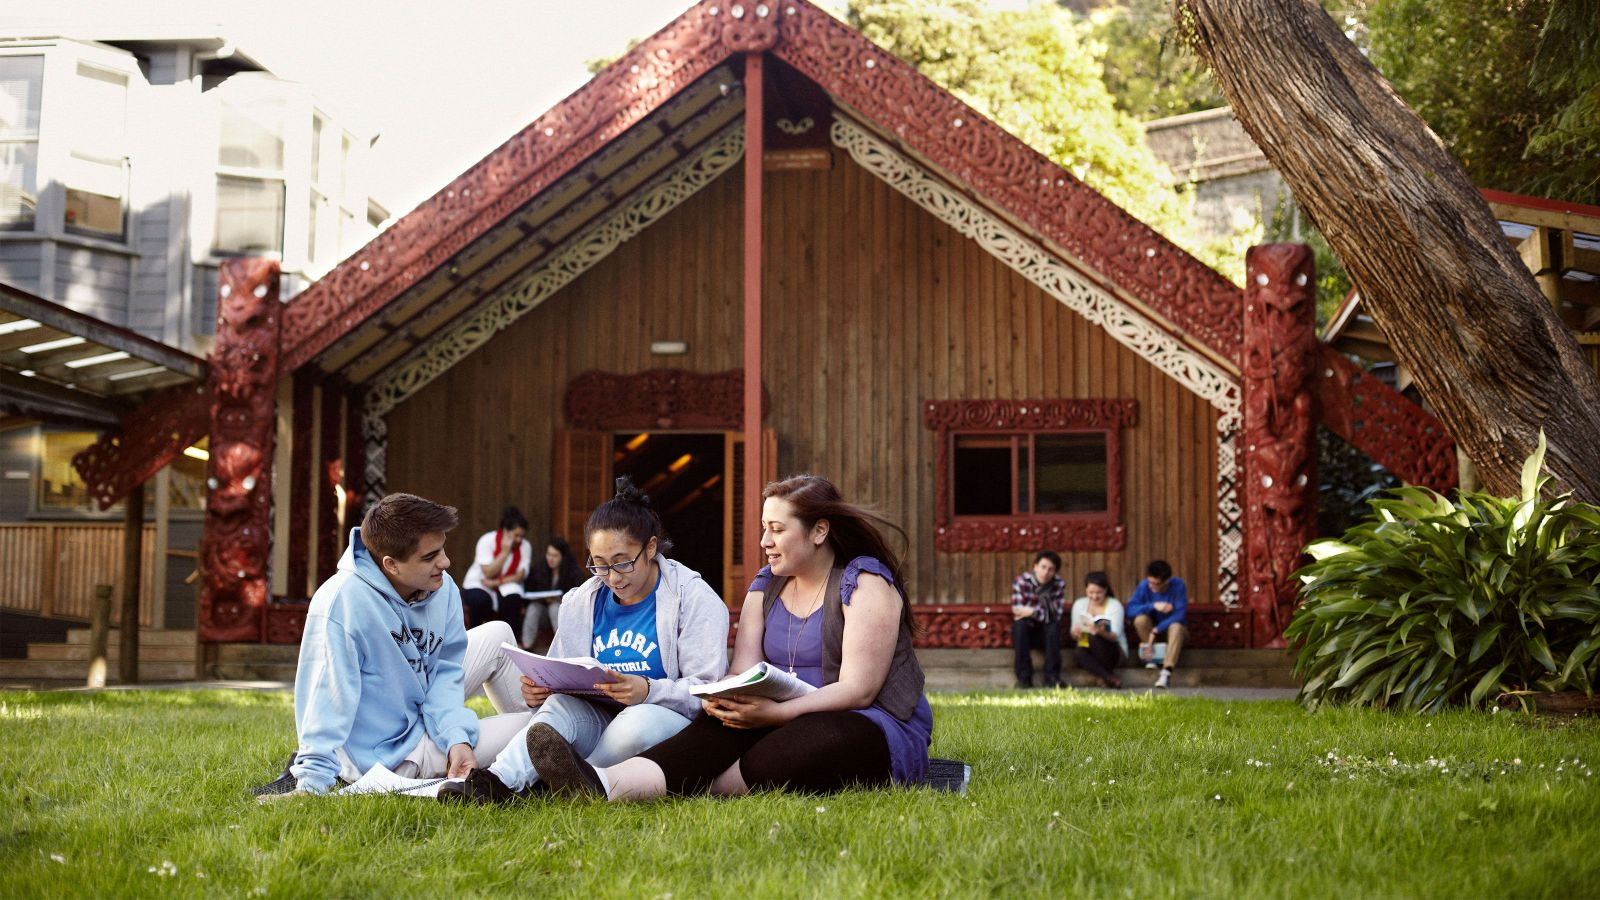 Students sit in front of the Marae.